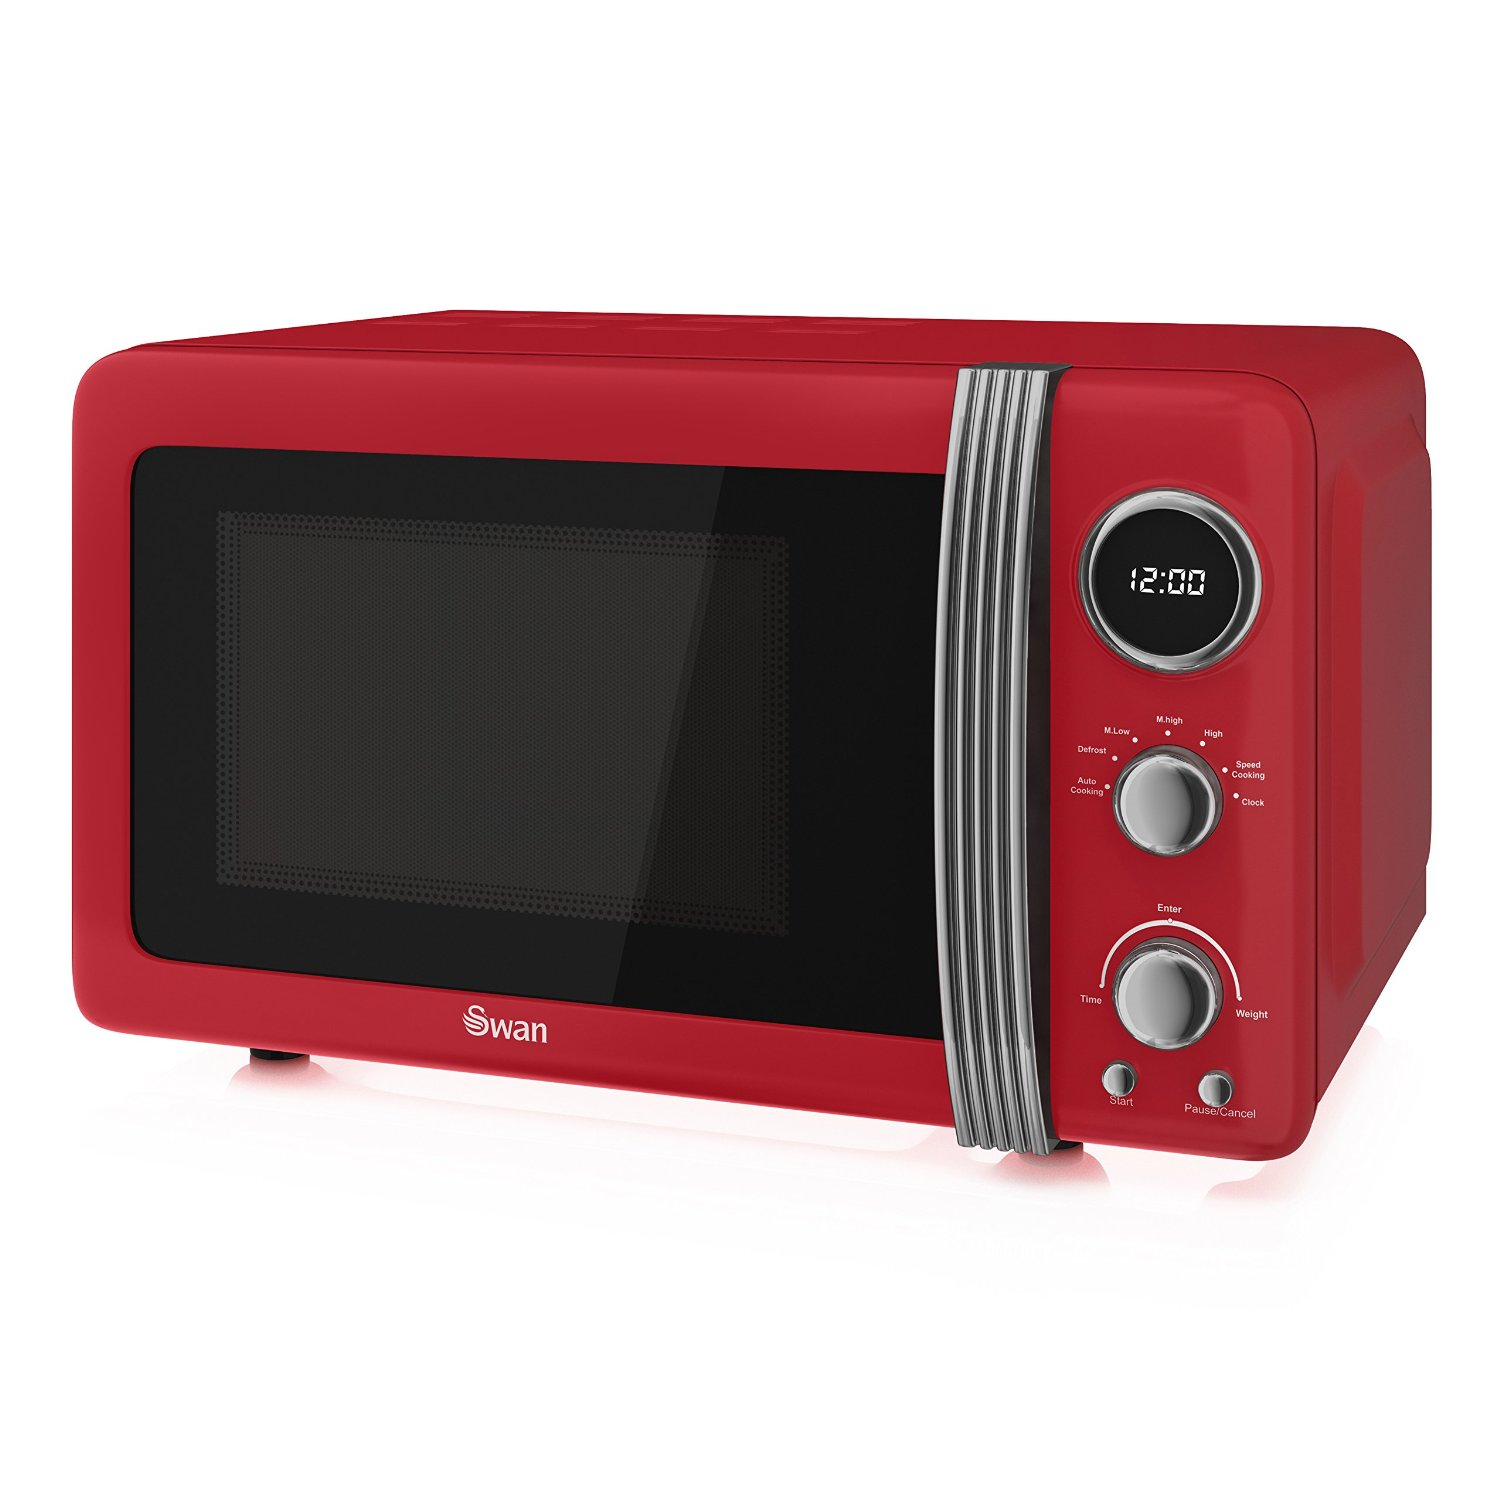 Swan Retro 20L 800W Red Microwave Review ...